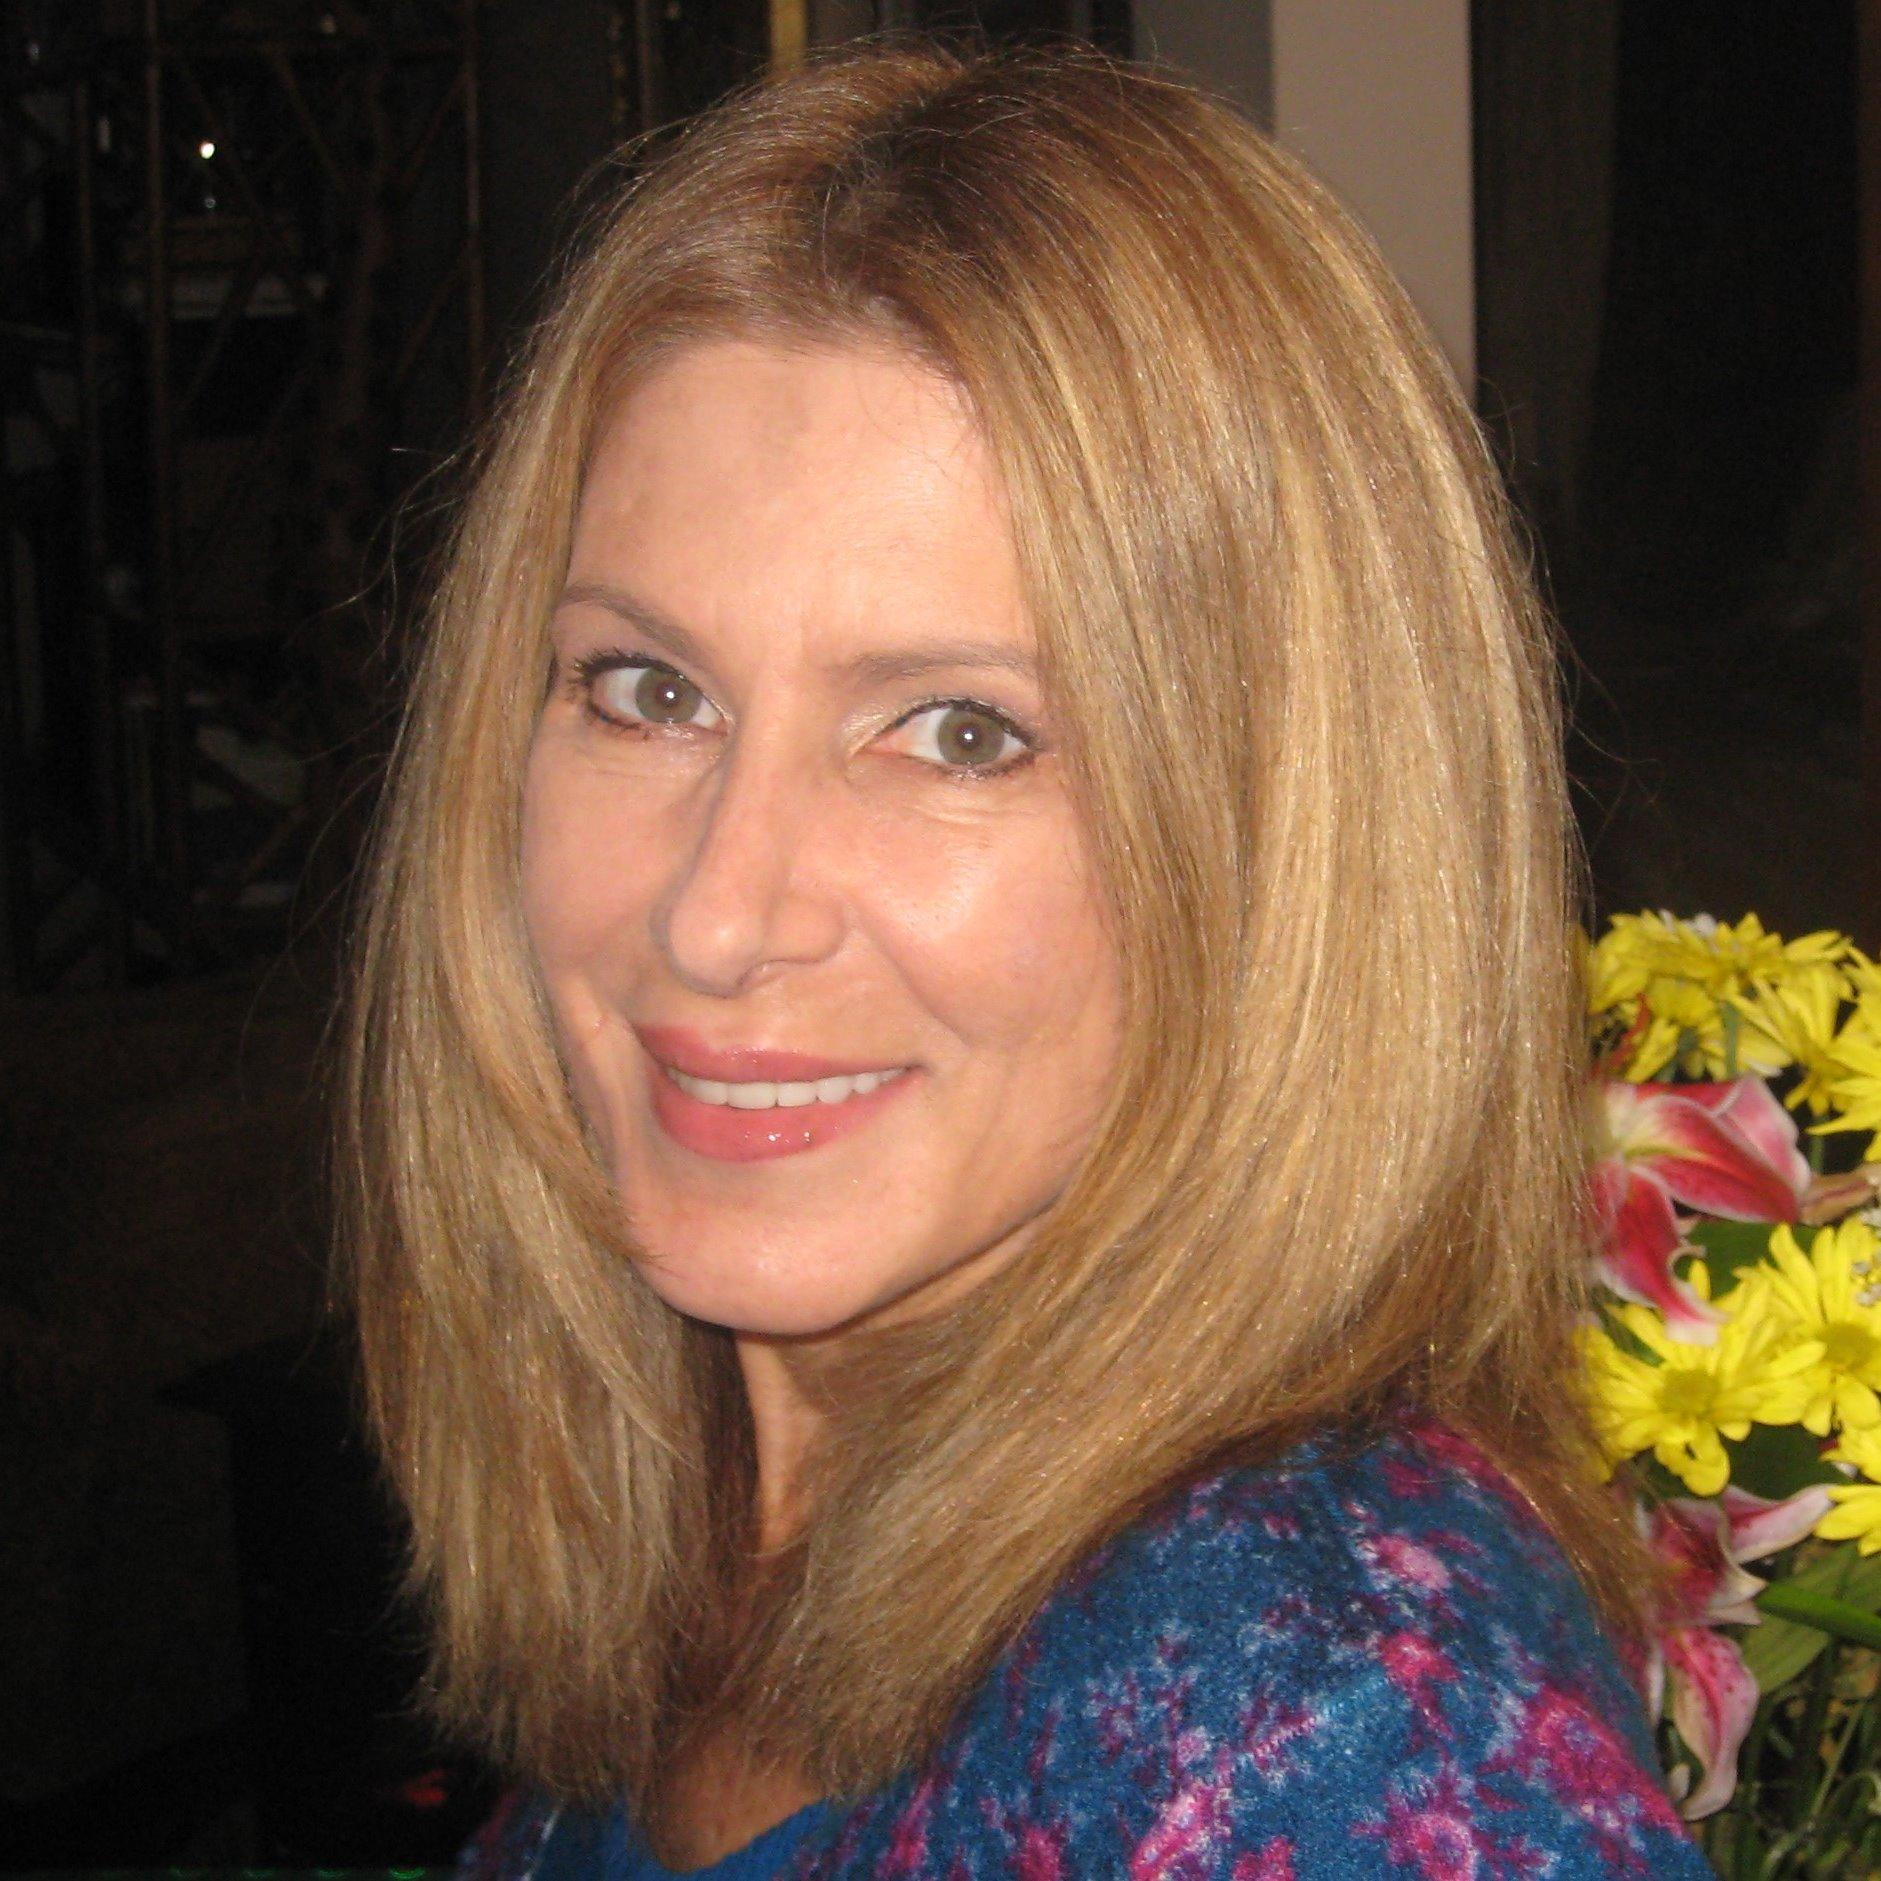 Divorce Lawyer in NY New York 10006 Law Offices of Lisa Beth Older 65 Broadway suite 706  (212)786-0901